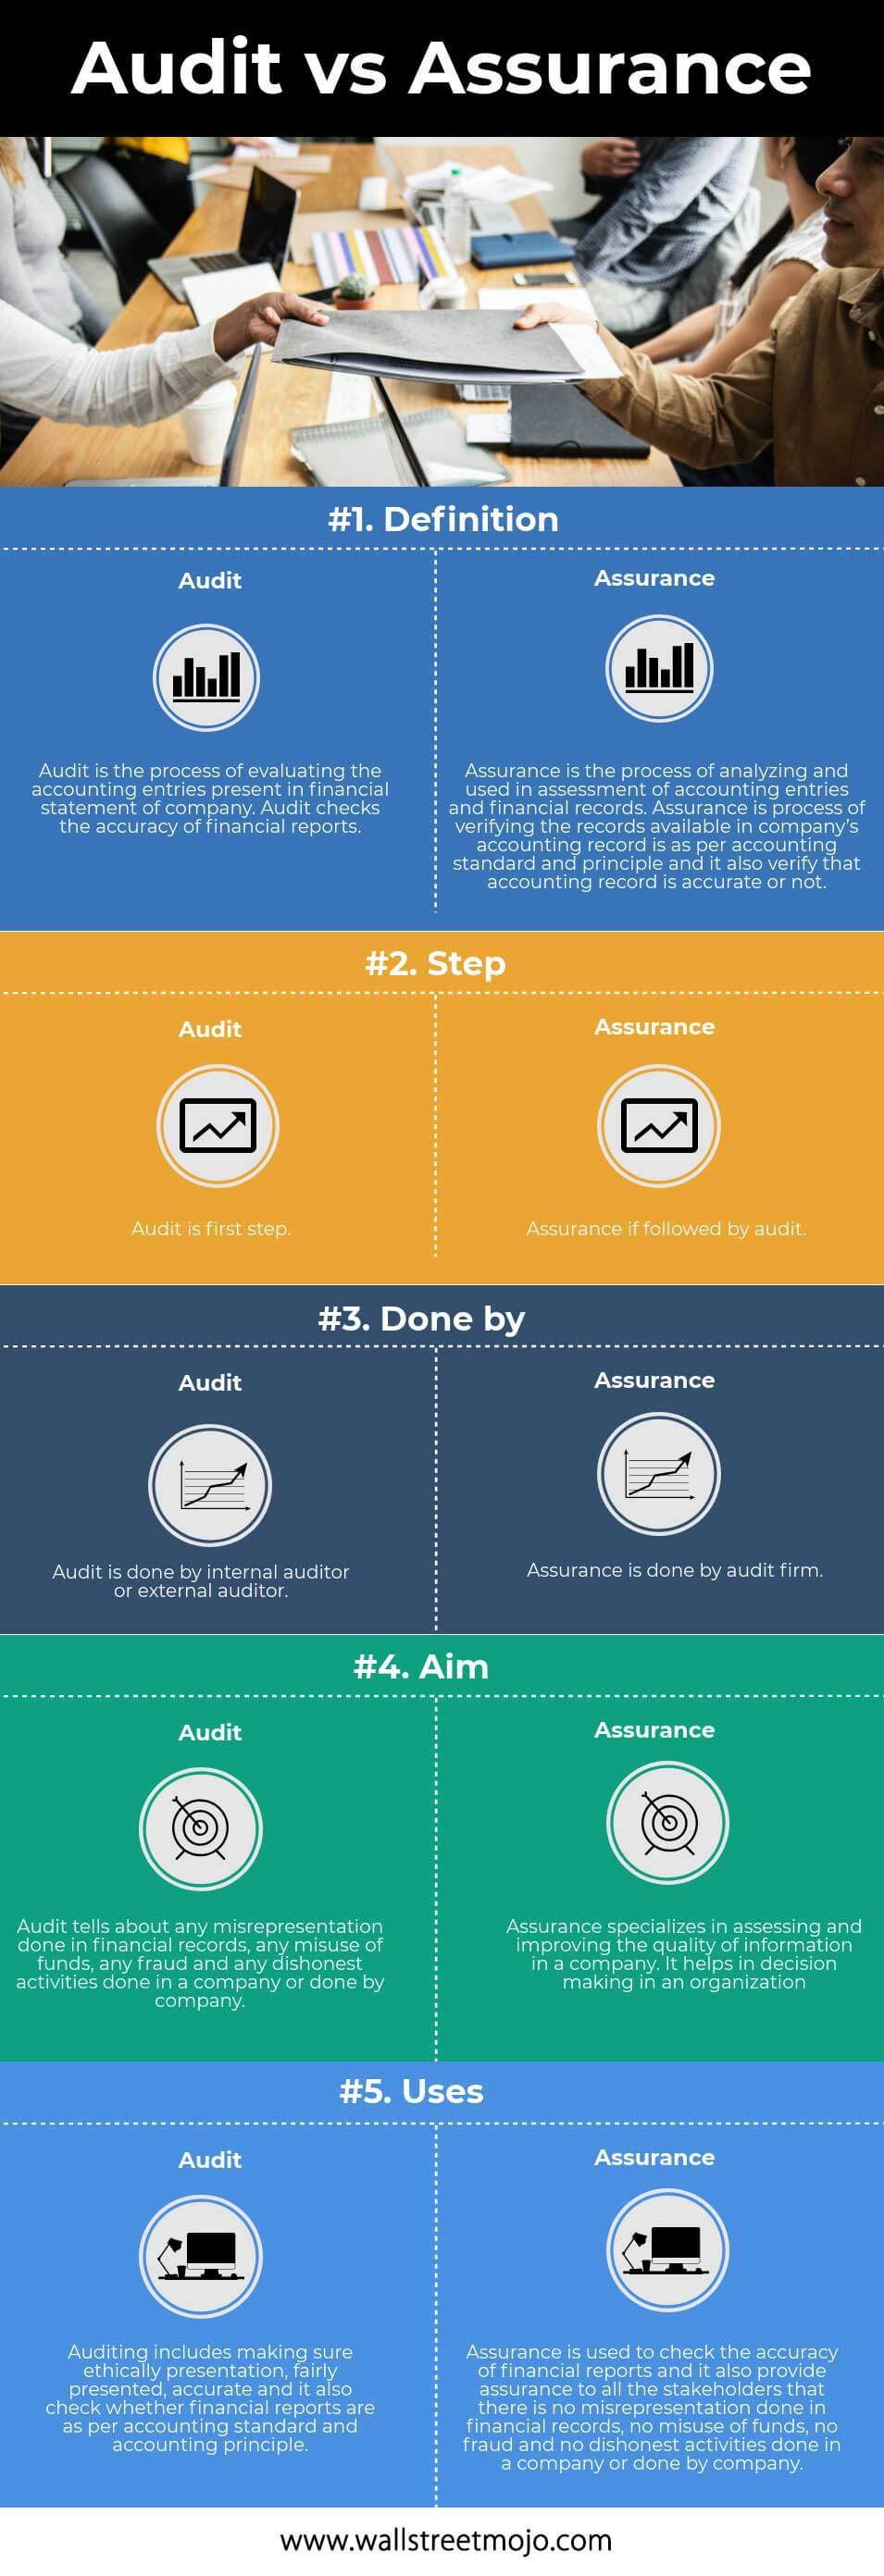 Audit vs Assurance | Top 5 Best Differences (with Infographics)